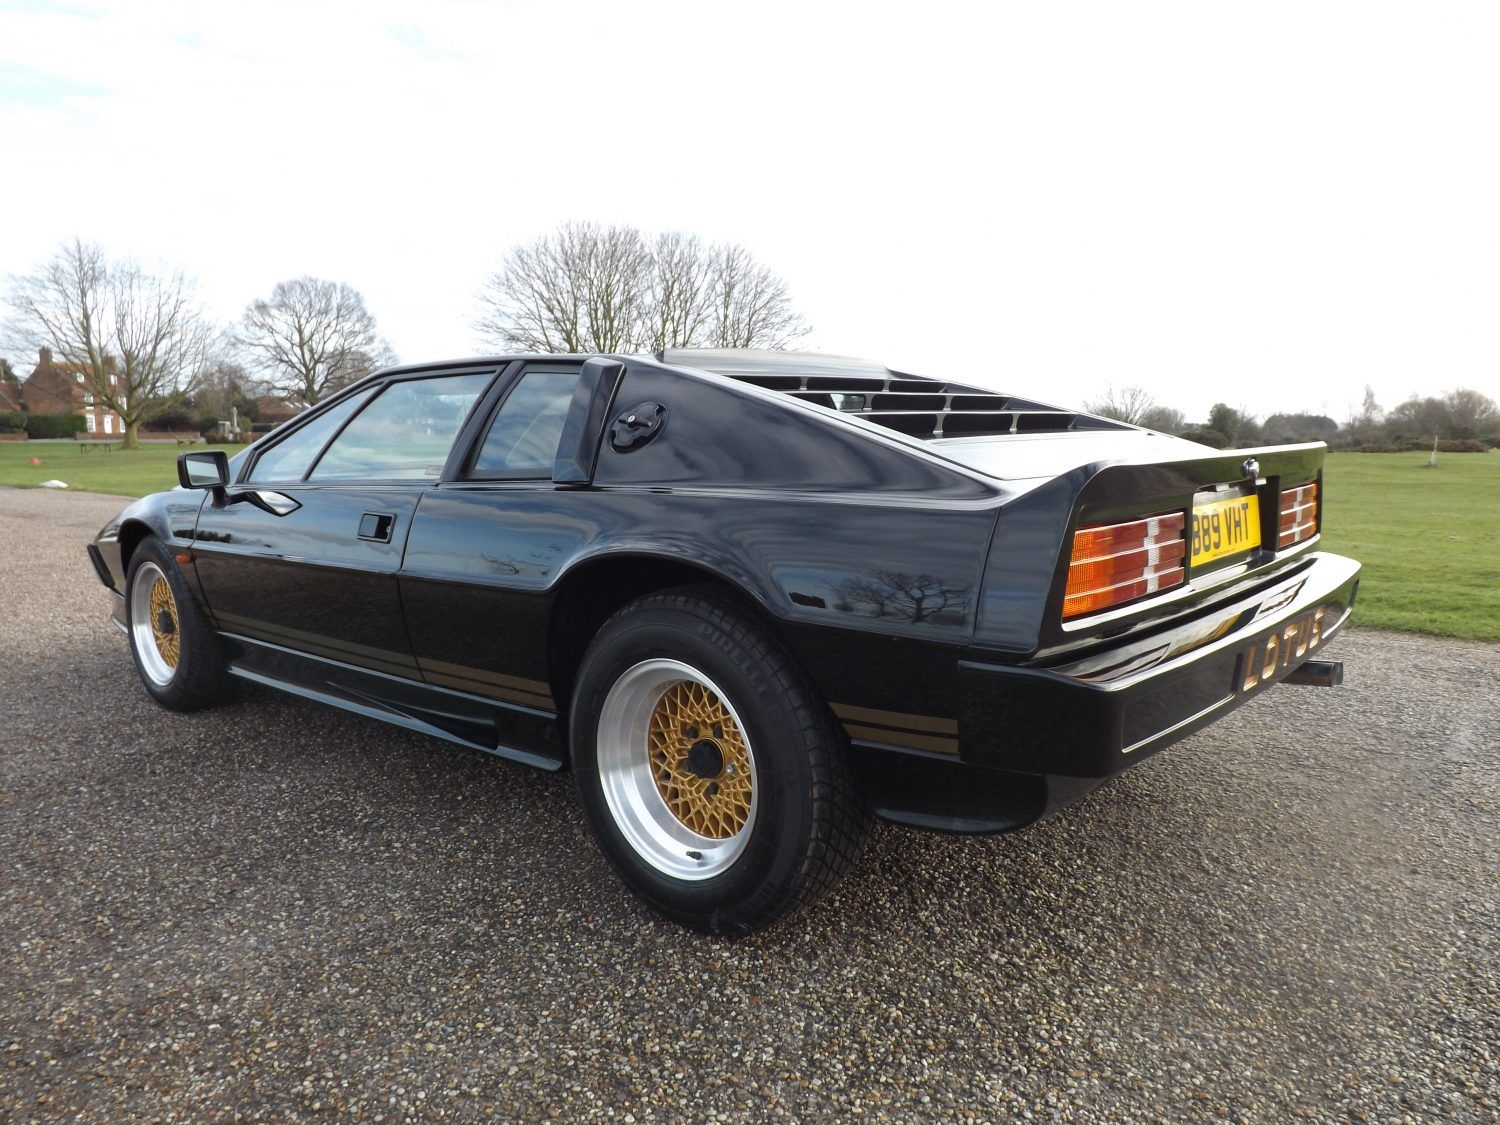 1985 Lotus Esprit Turbo Bridge Classic Cars in 2020